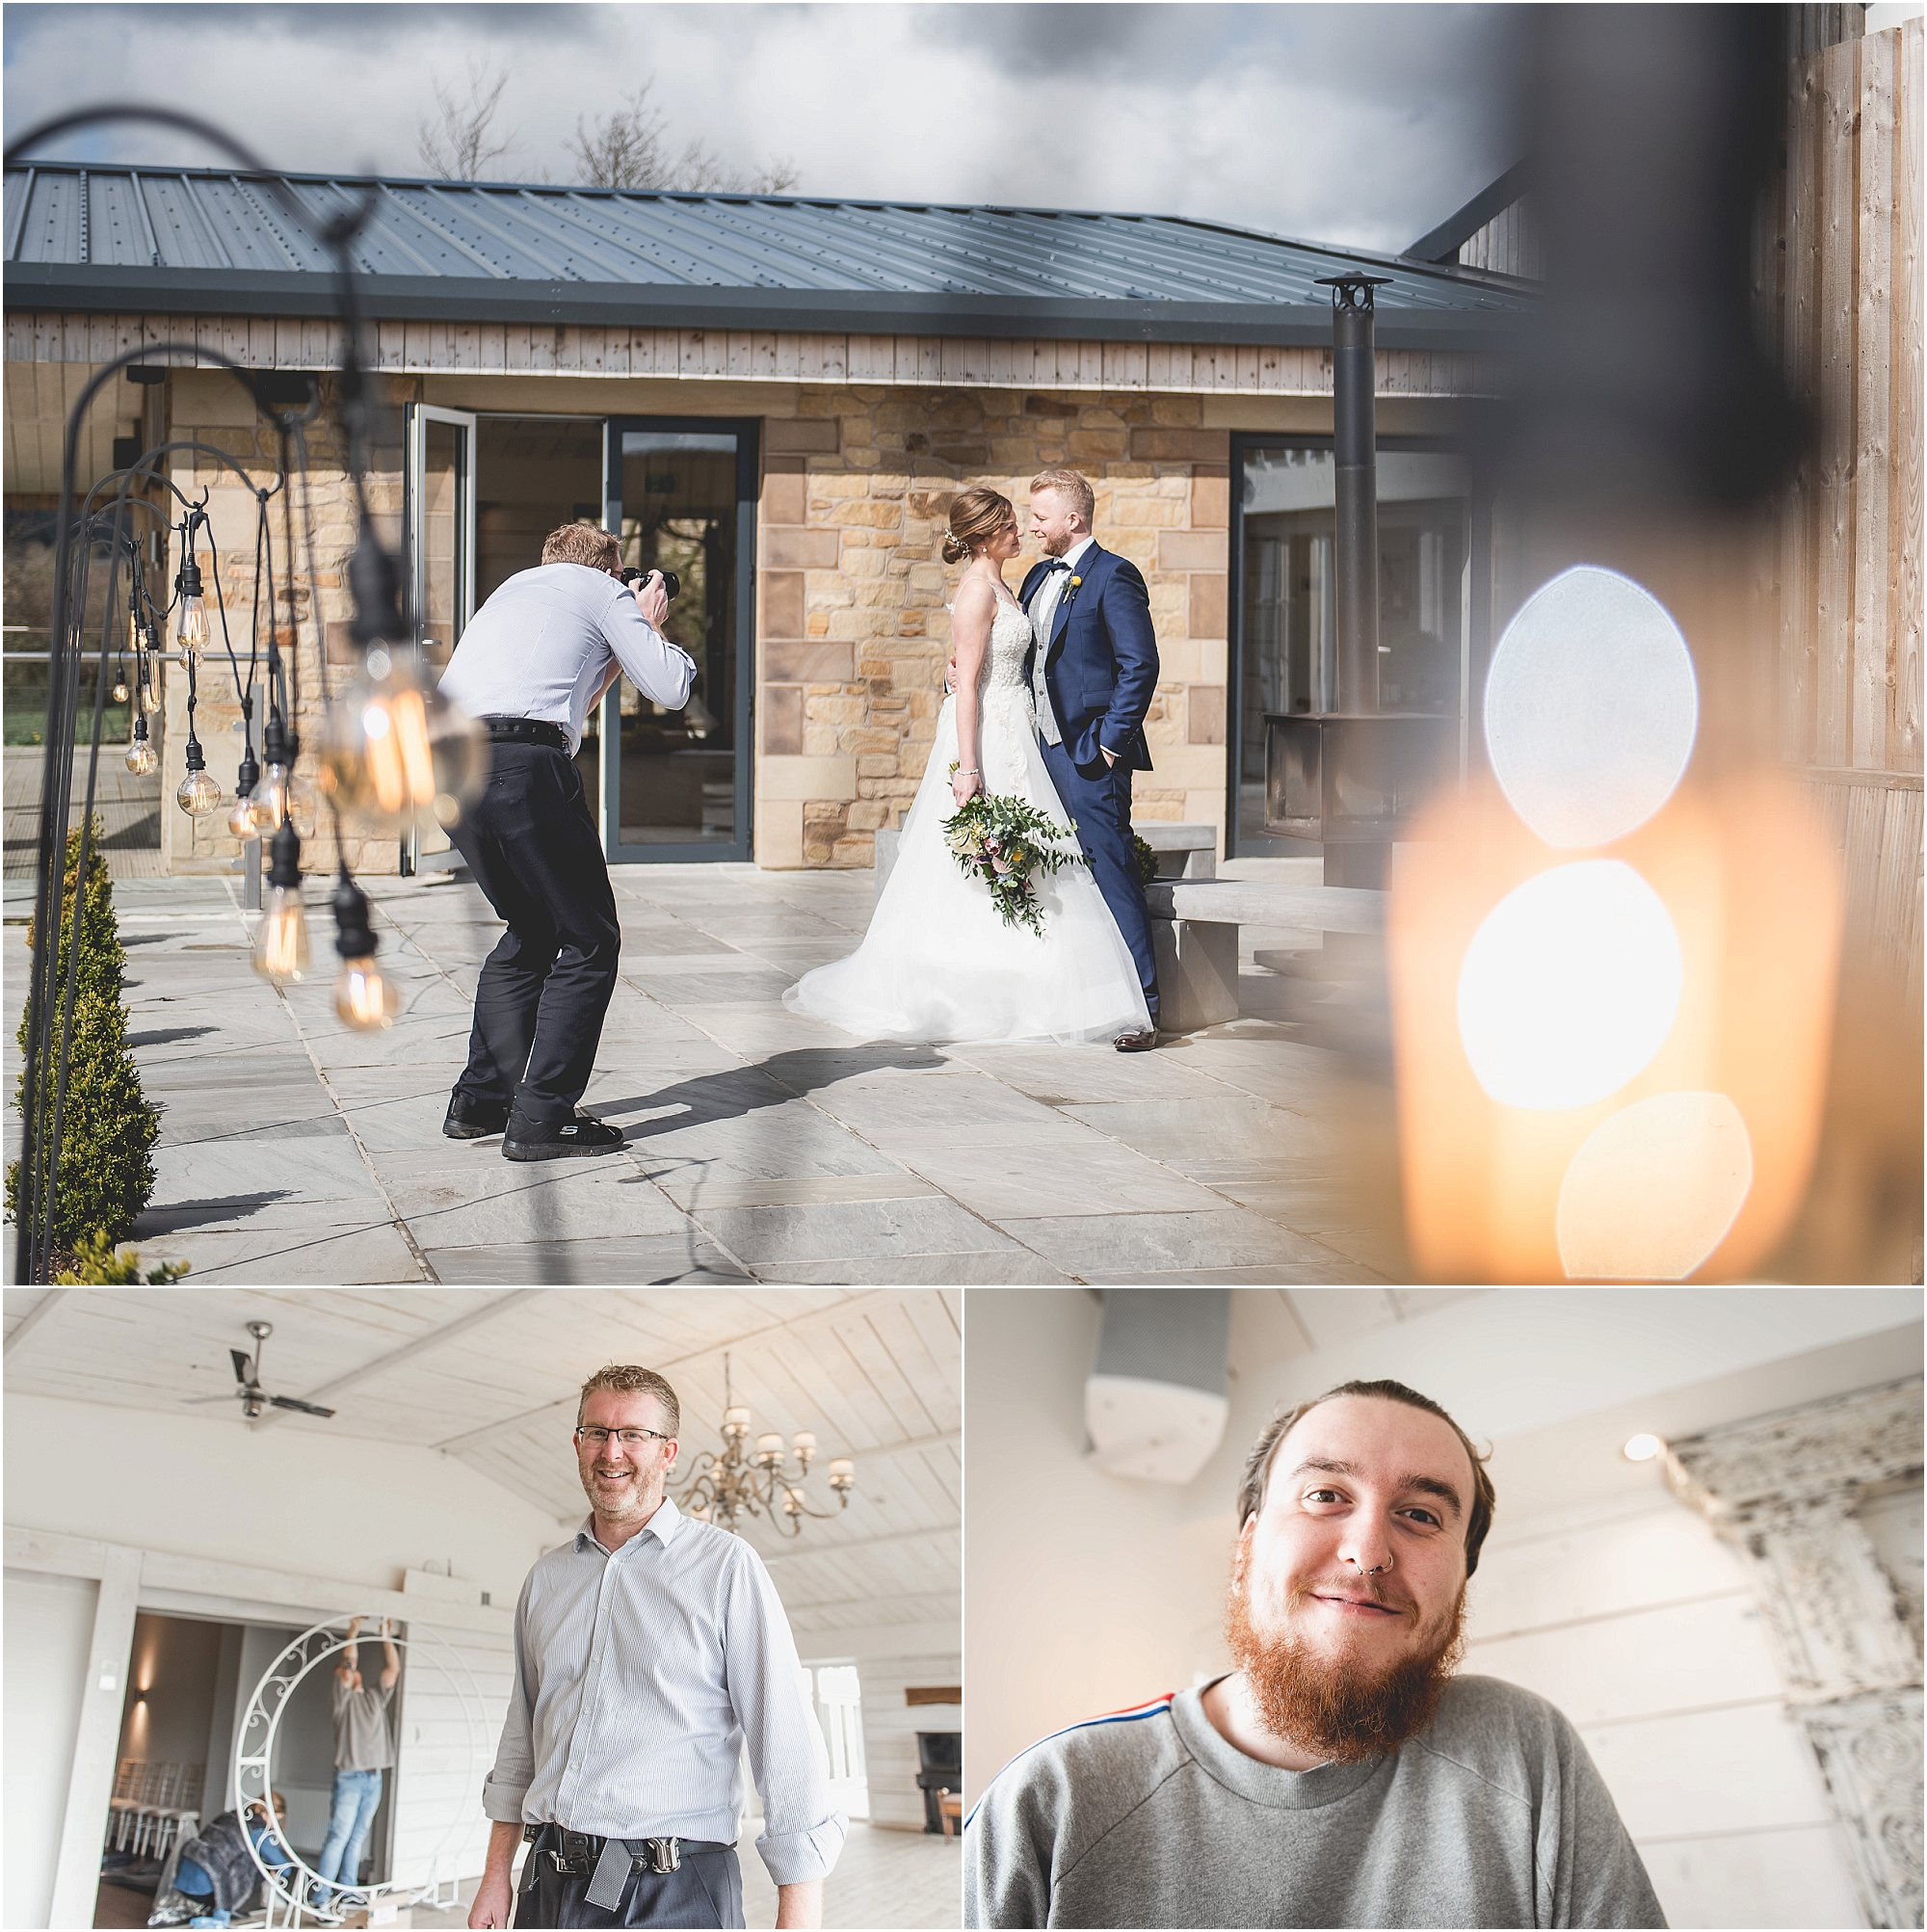 Wedding Photographers finish for the day at Bashall Barn